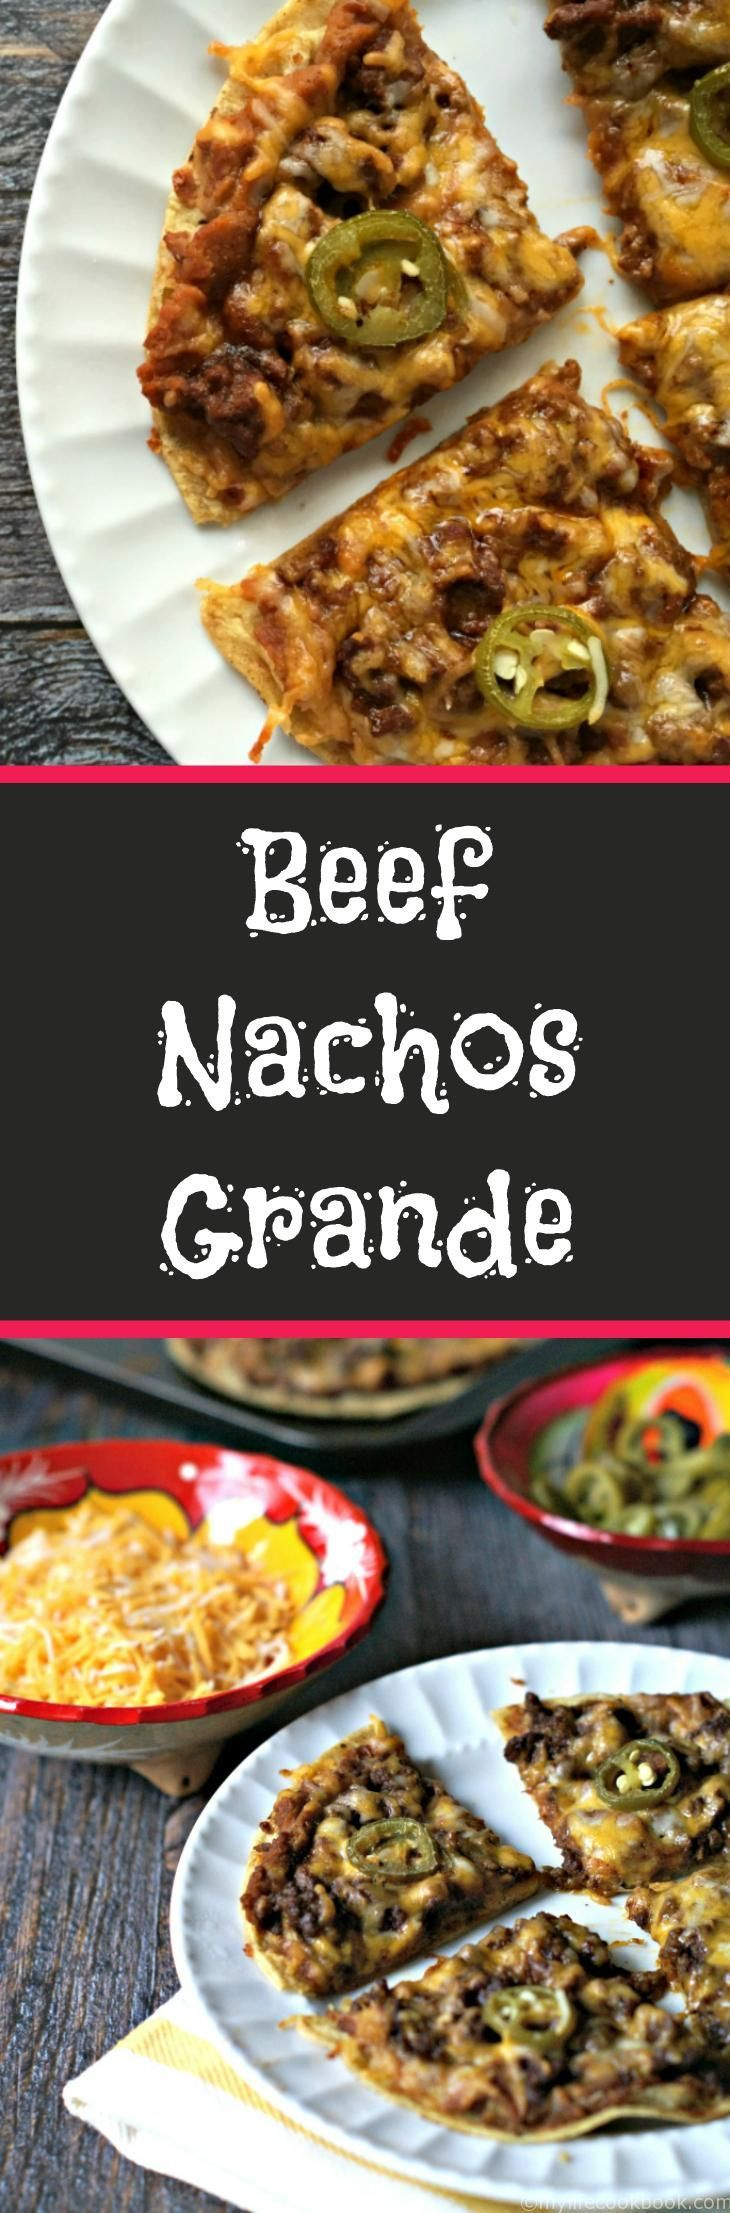 These easy, tasty beef nachos grande are reminiscent of Chi Chis back in the day. They make a delicious snack or appetizer.